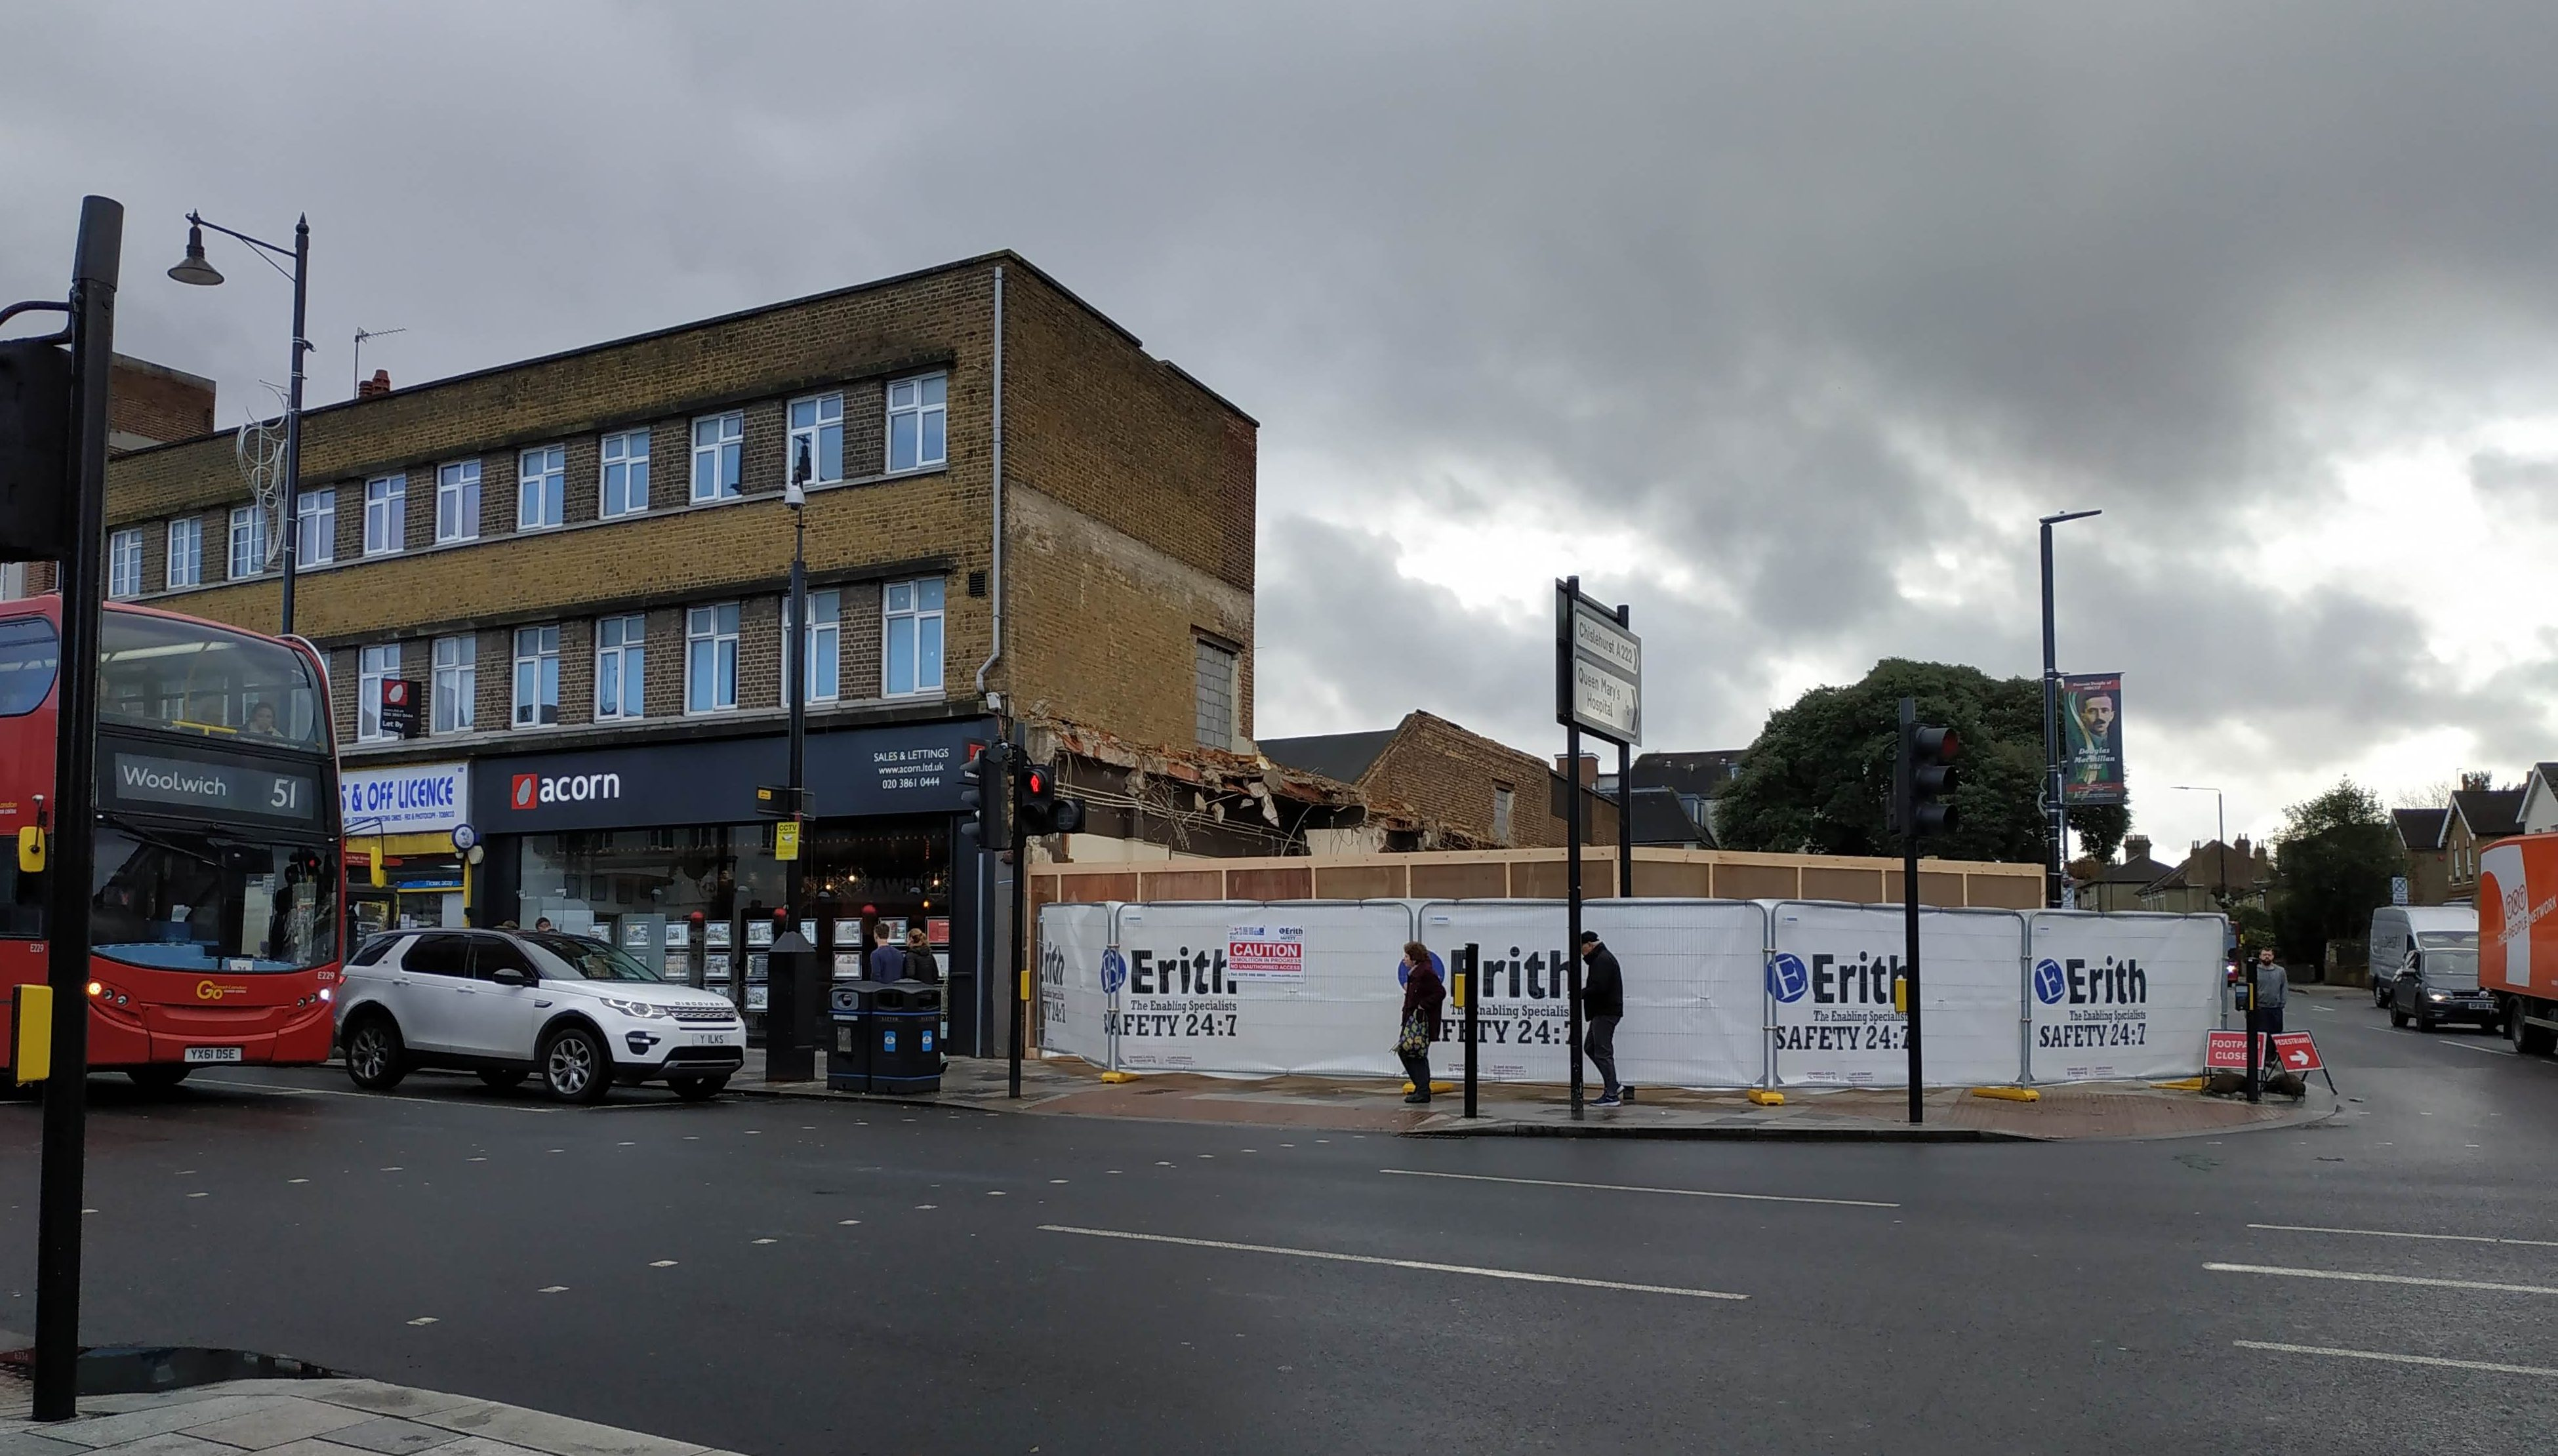 Sidcup cinema & library construction to commence January 2021